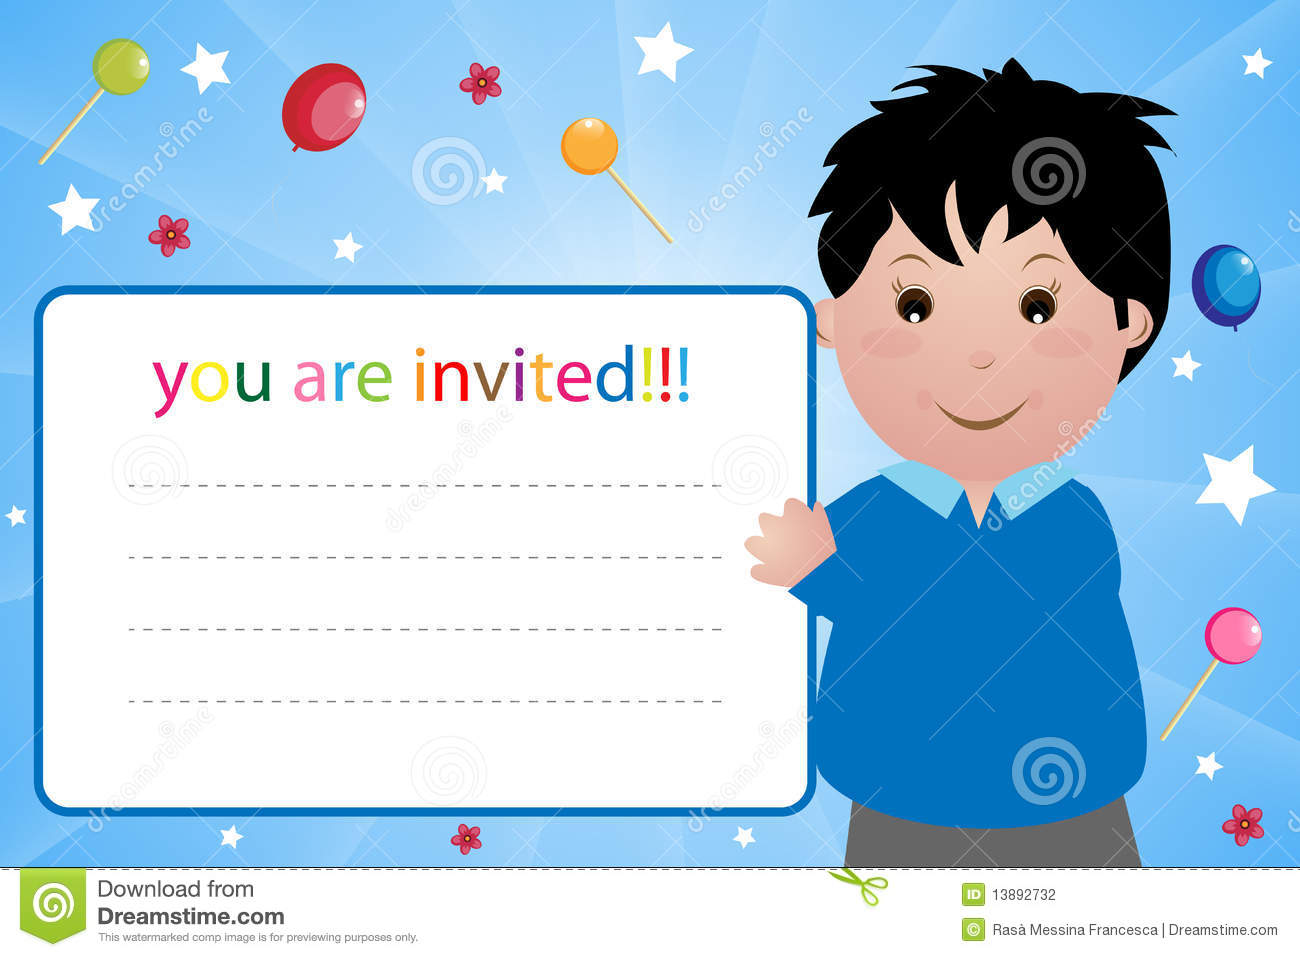 Invitation card for boys northurthwall invitation card for boys stopboris Gallery